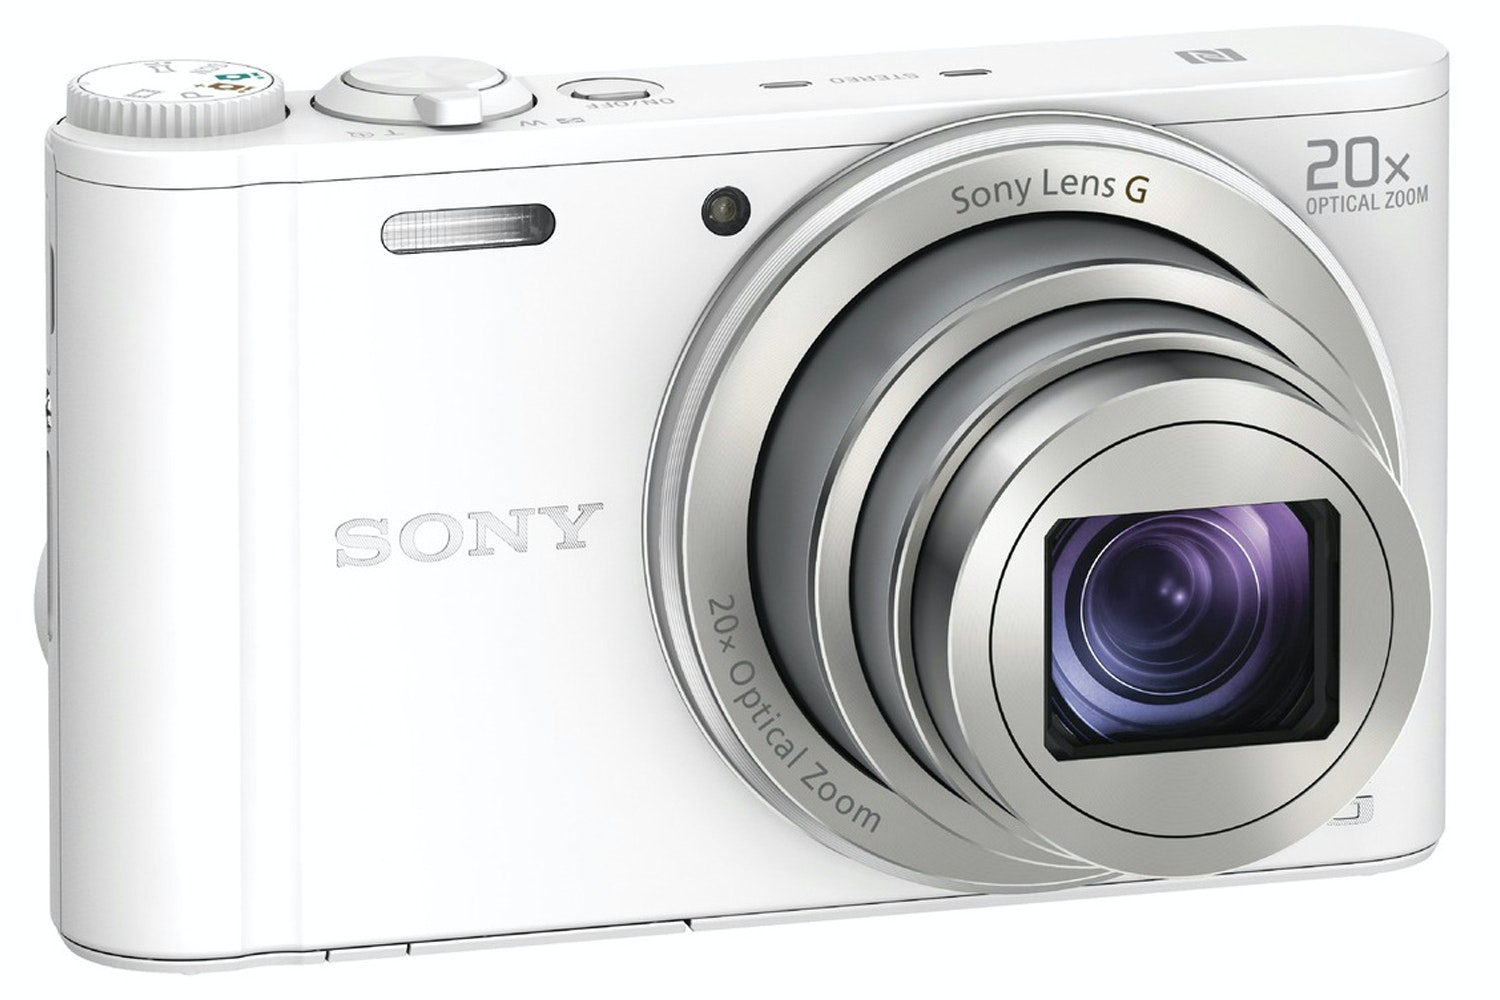 Sony Cyber-shot DSCWX350 Digital Camera | White